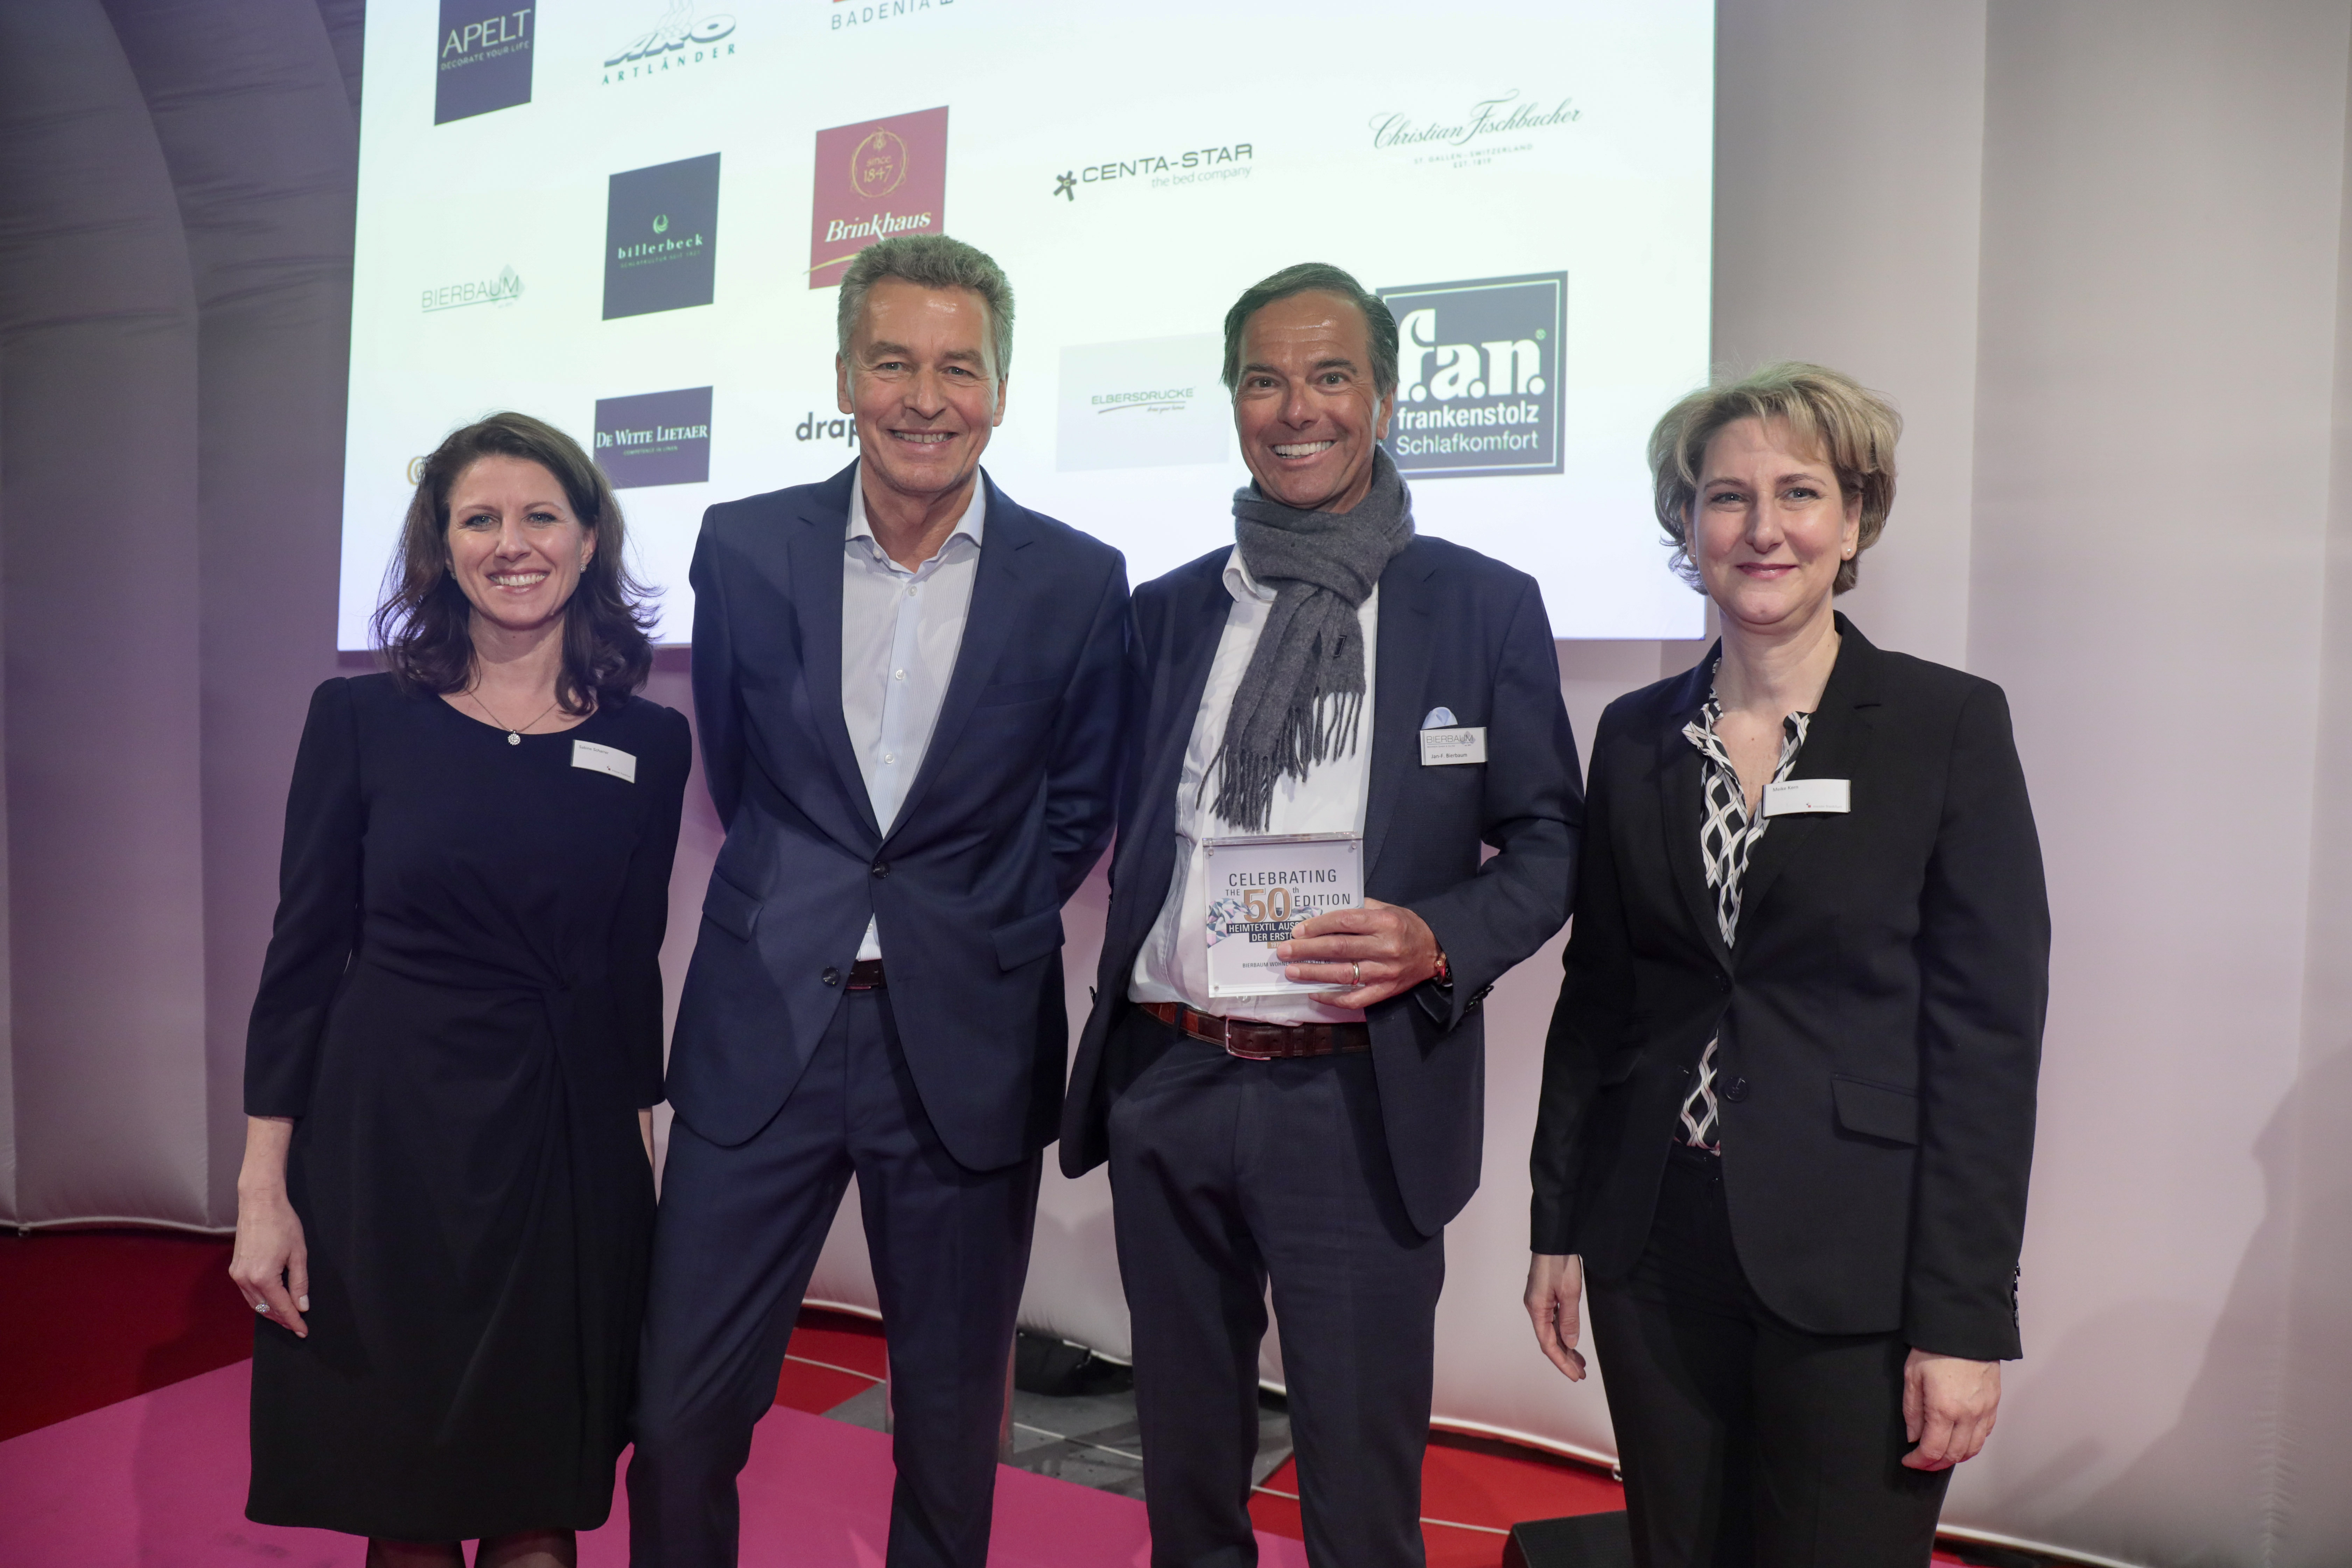 Awards ceremony for exhibitors from the very beginning / HERMANN BIEDERLACK GmbH + Co. KG